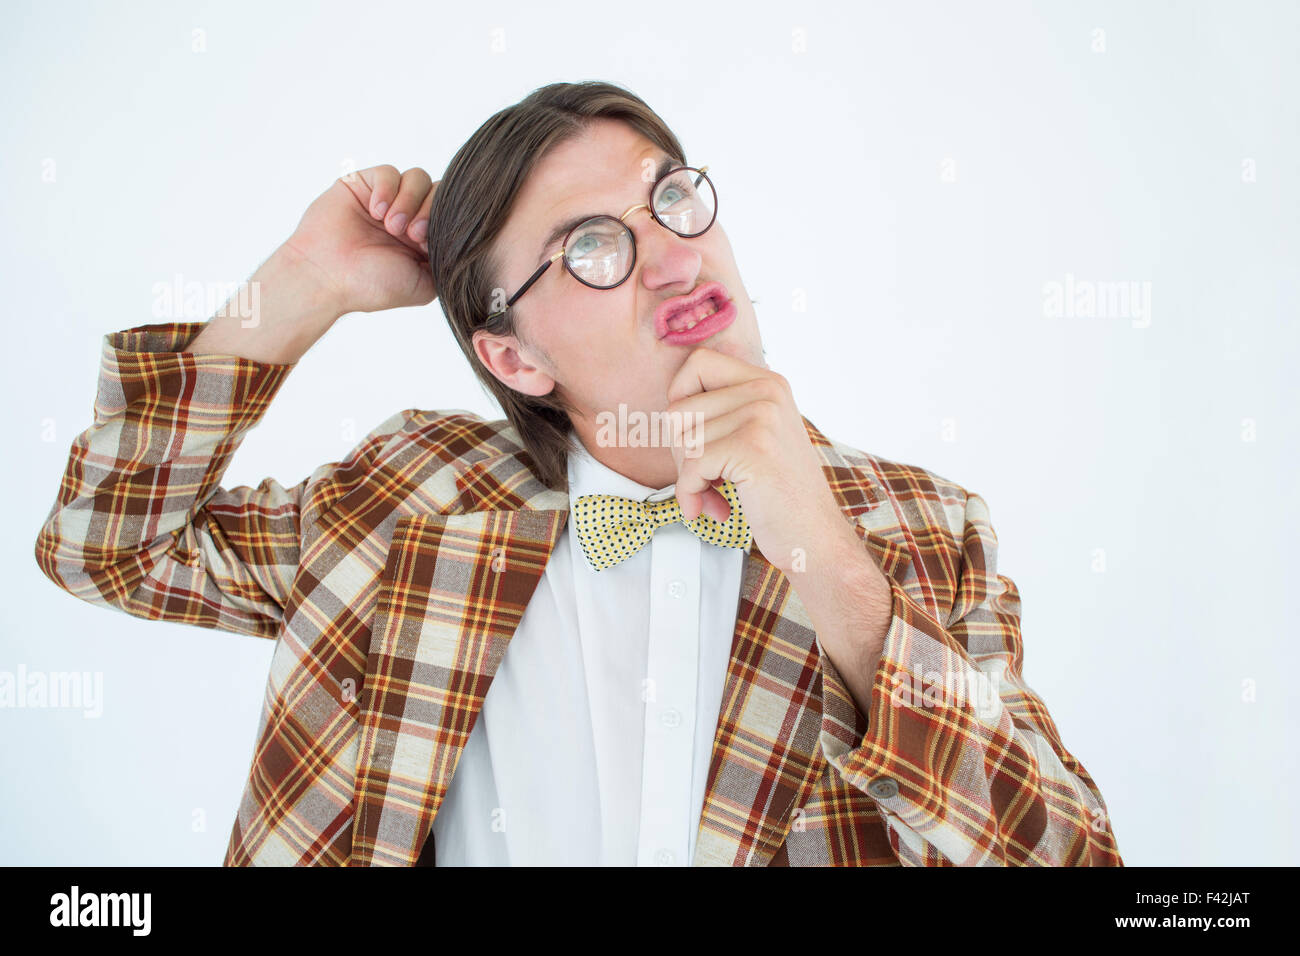 Geeky hipster scratching his head - Stock Image